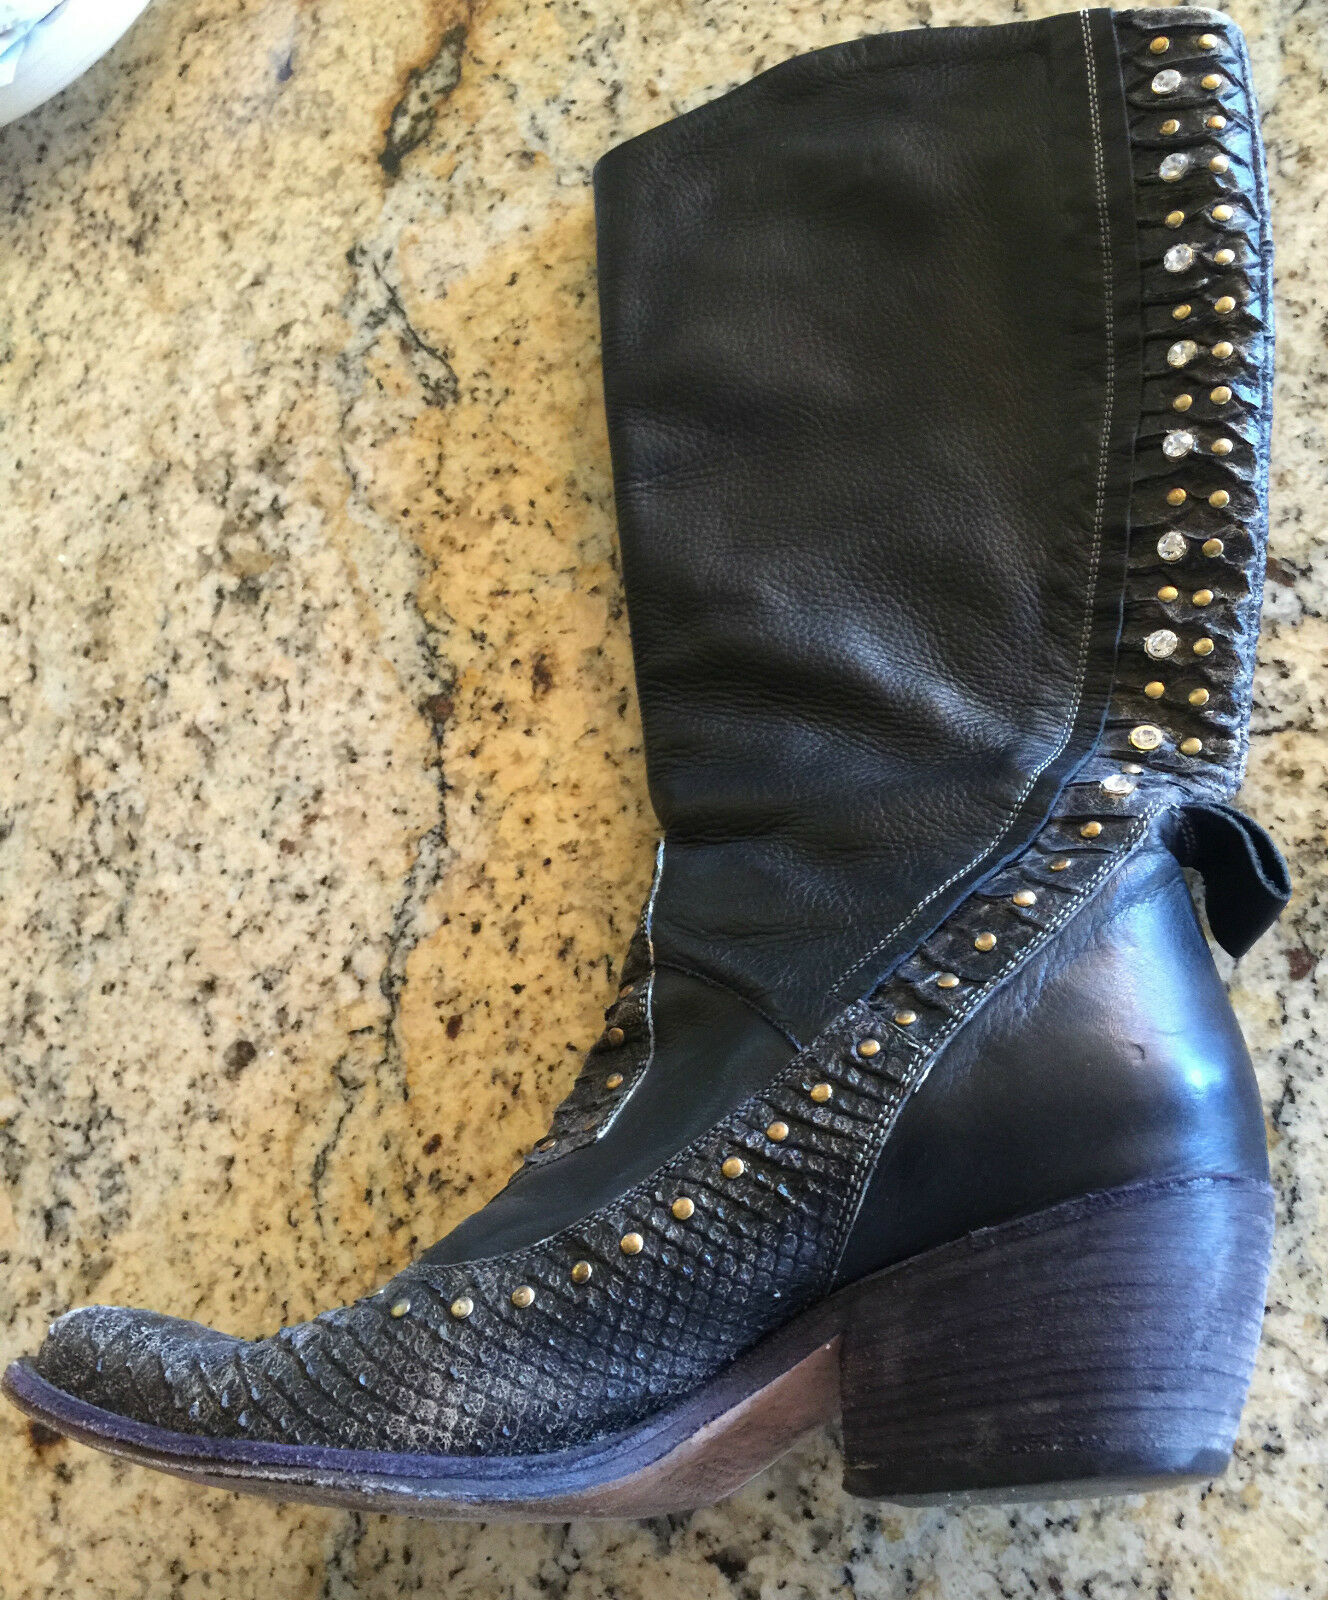 El Vaquero Black Leather DISTRESSED DISTRESSED DISTRESSED Boots with Rhinestones Size 39 a820f4